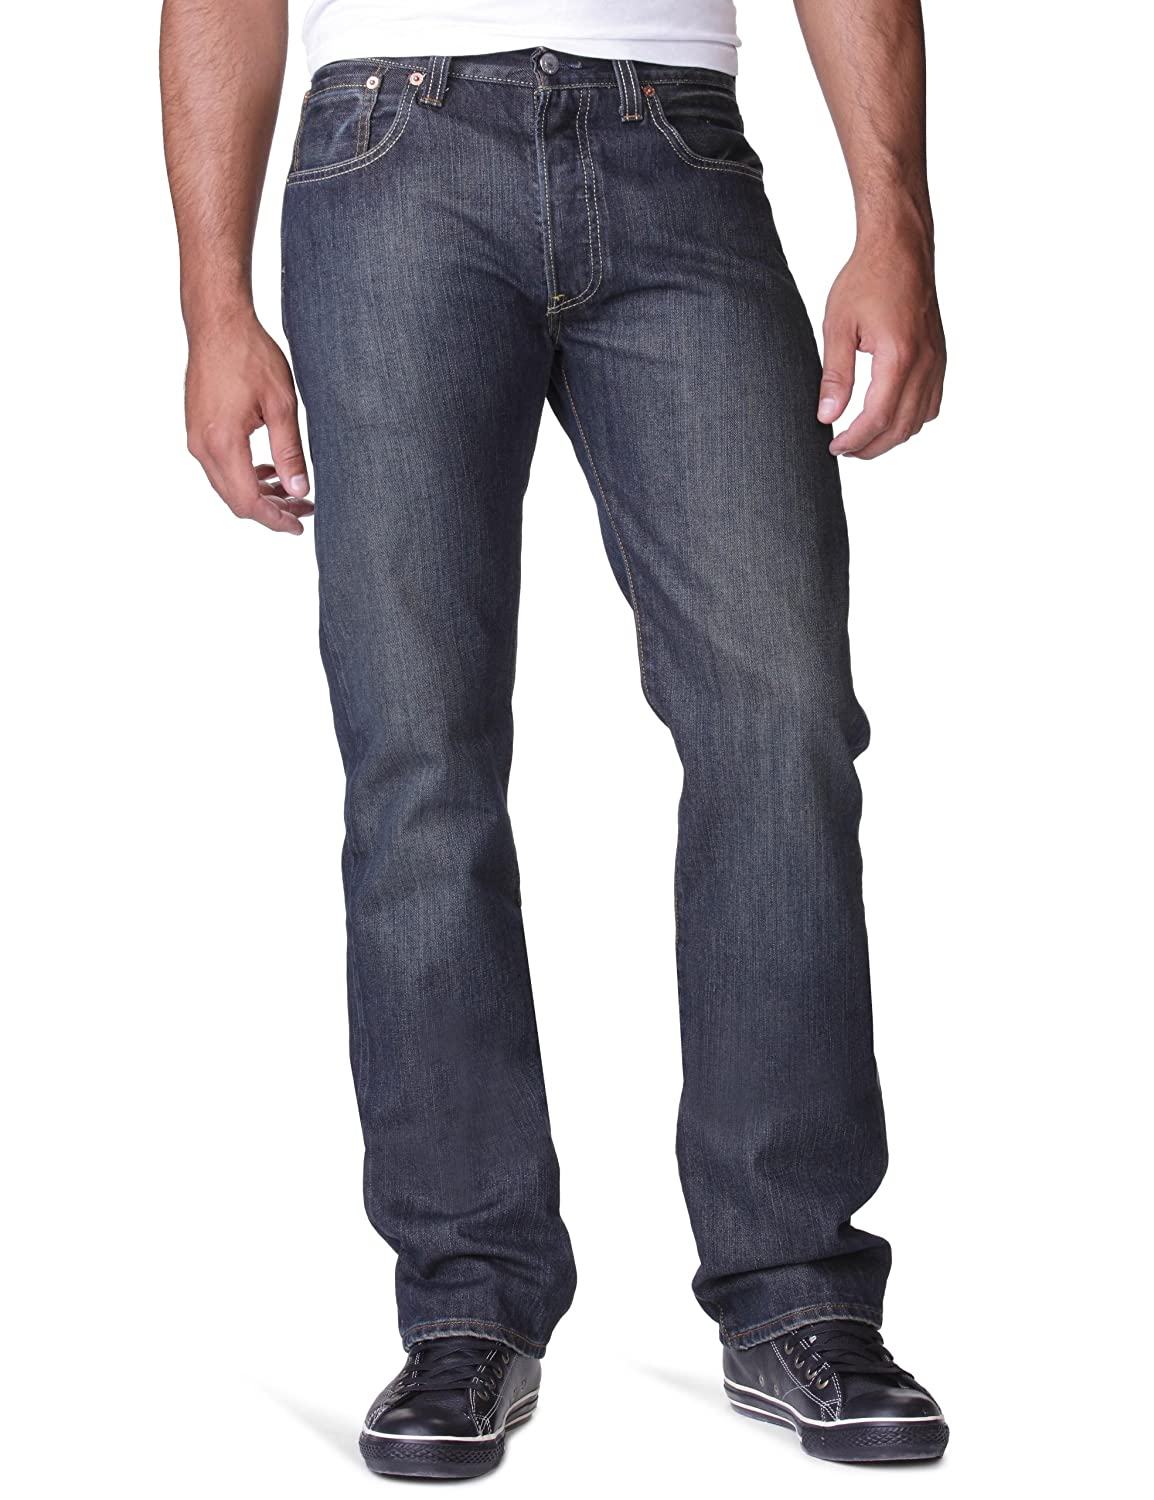 Levis 501 Levi?s Original Fit, Jeans Hombre: Amazon.es ...